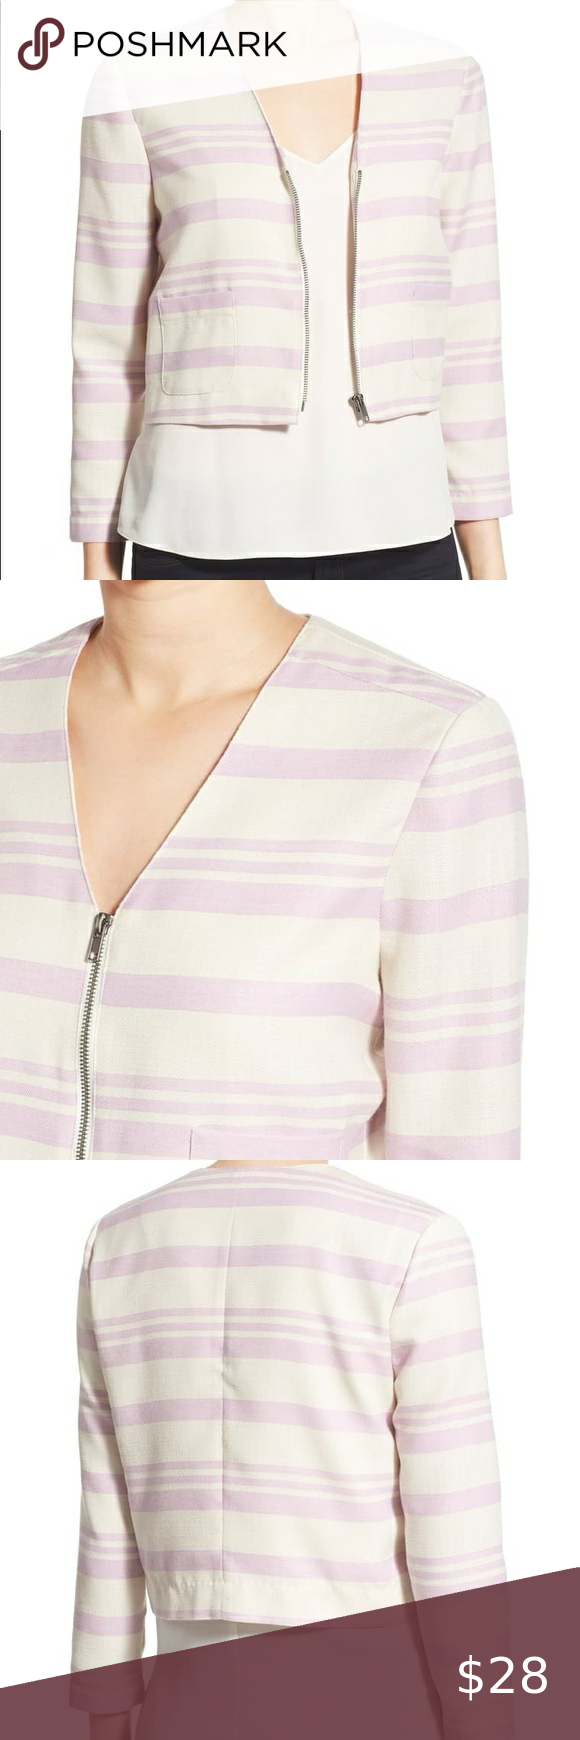 Cupcakes And Cashmere Lavender Stripe Blazer Med Cupcakes And Cashmere Cropped Striped Blazer In Pastel La Elegant Blazers Striped Blazer Cupcakes And Cashmere [ 1740 x 580 Pixel ]